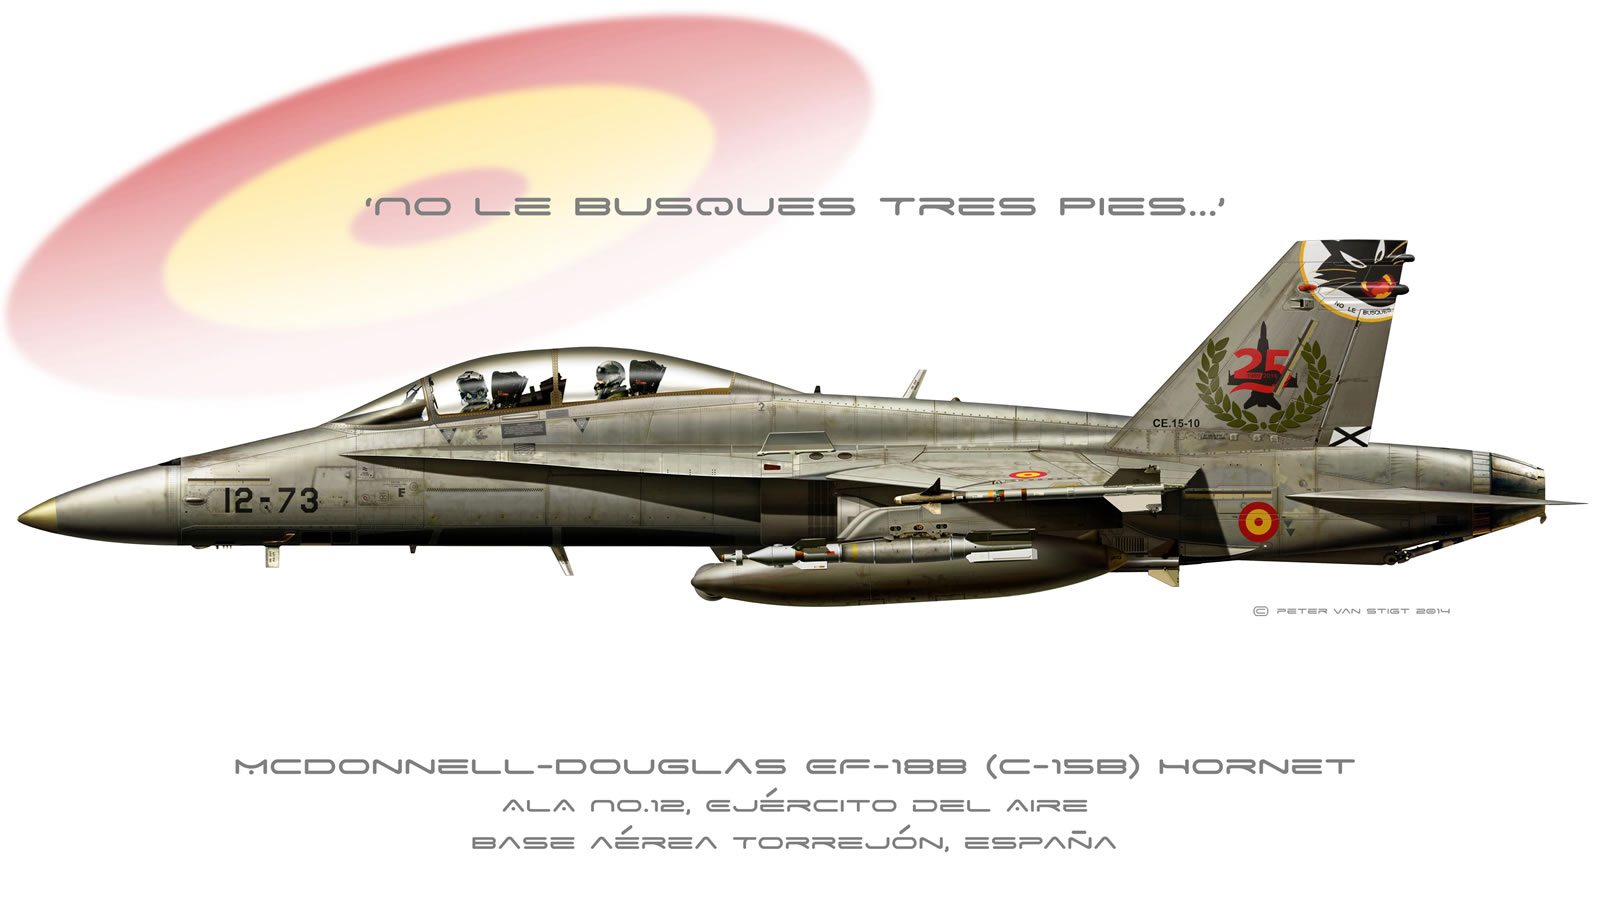 Spanish Air Force Hornet Profile